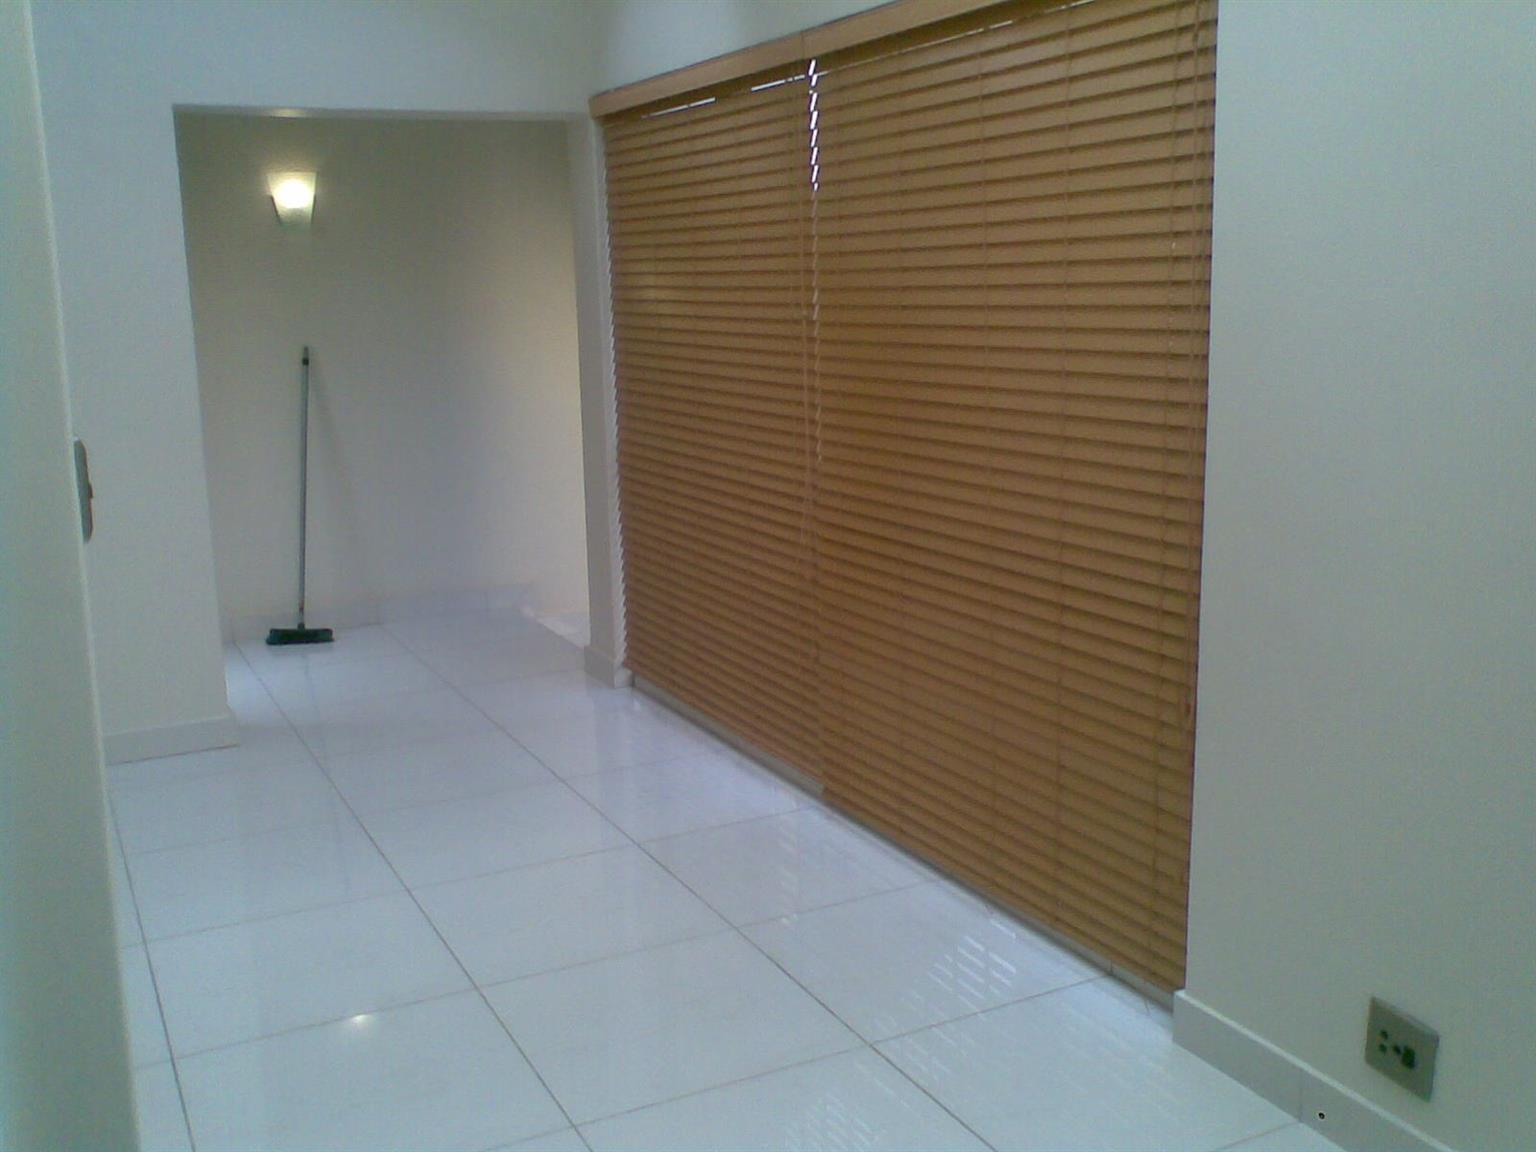 All Building Maintenance & Renovations (most around in kzn)